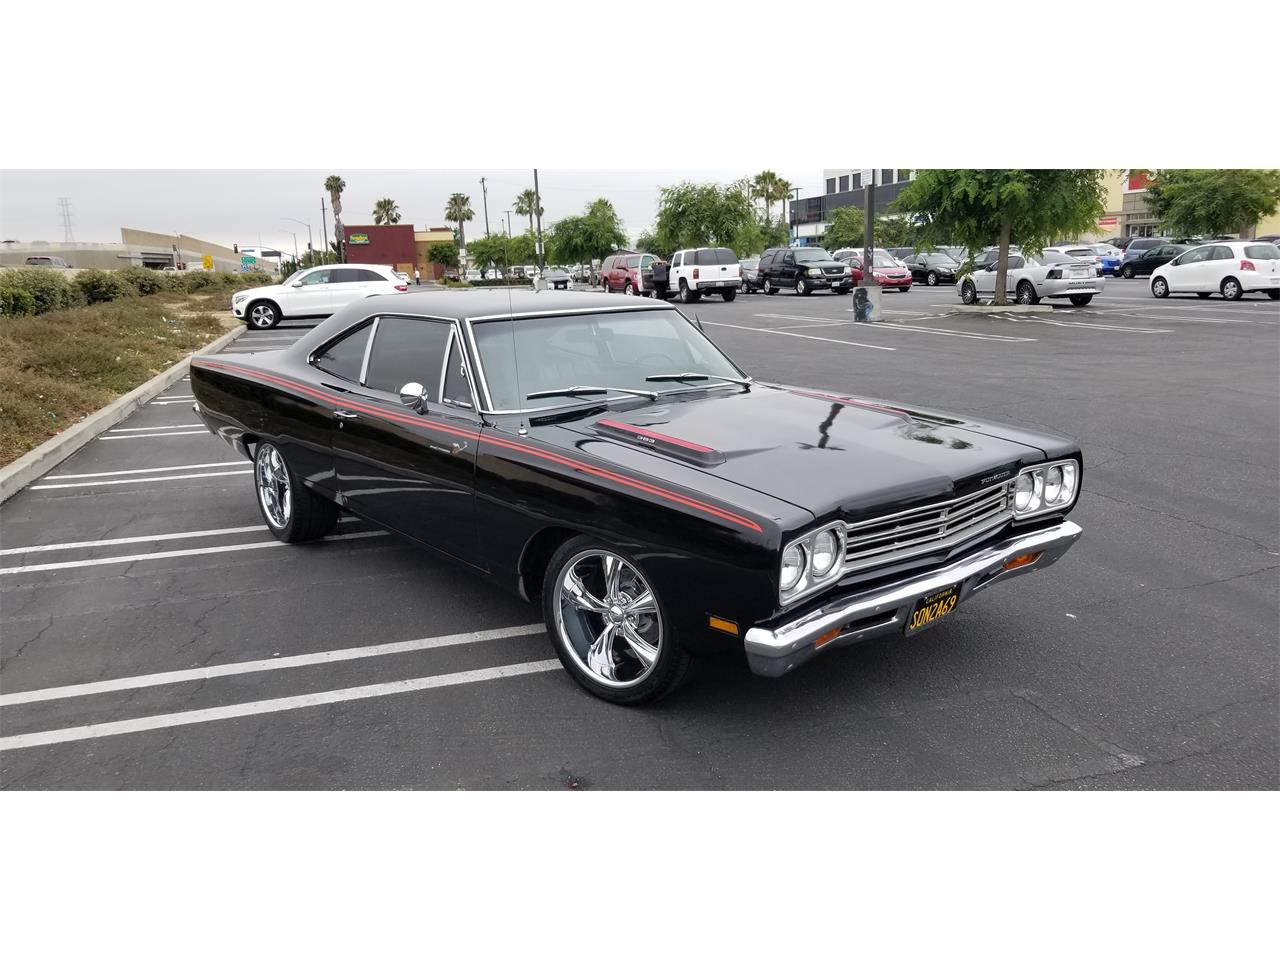 Large Picture of Classic '69 Road Runner located in California - $35,000.00 Offered by a Private Seller - QBA1